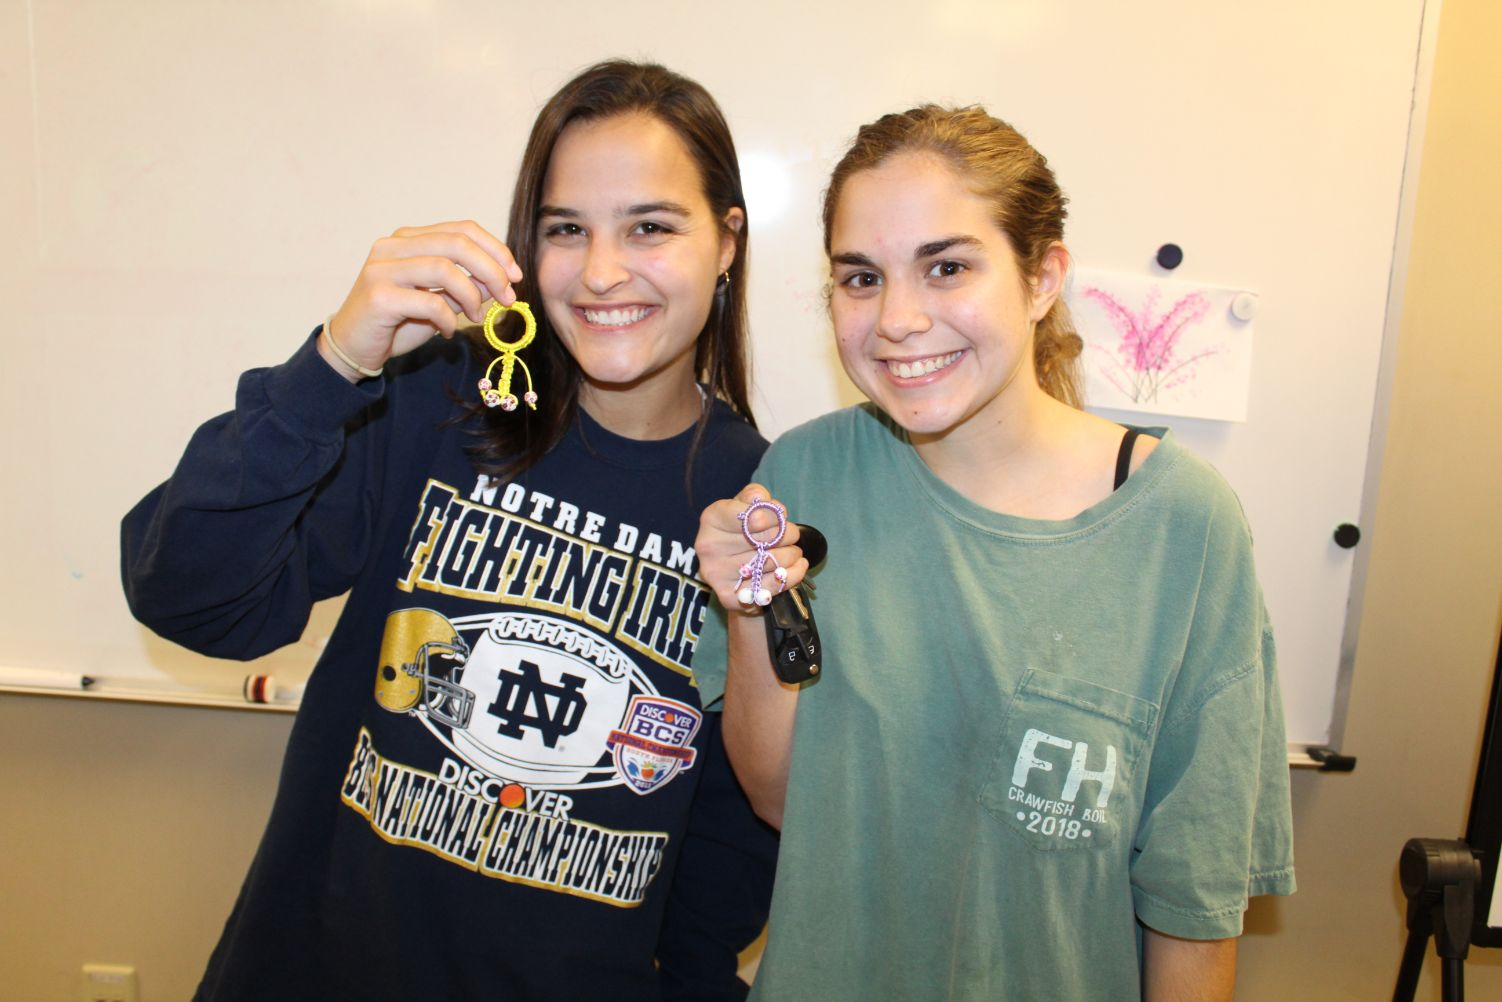 Two students pose together proudly displaying their newly made key chains.